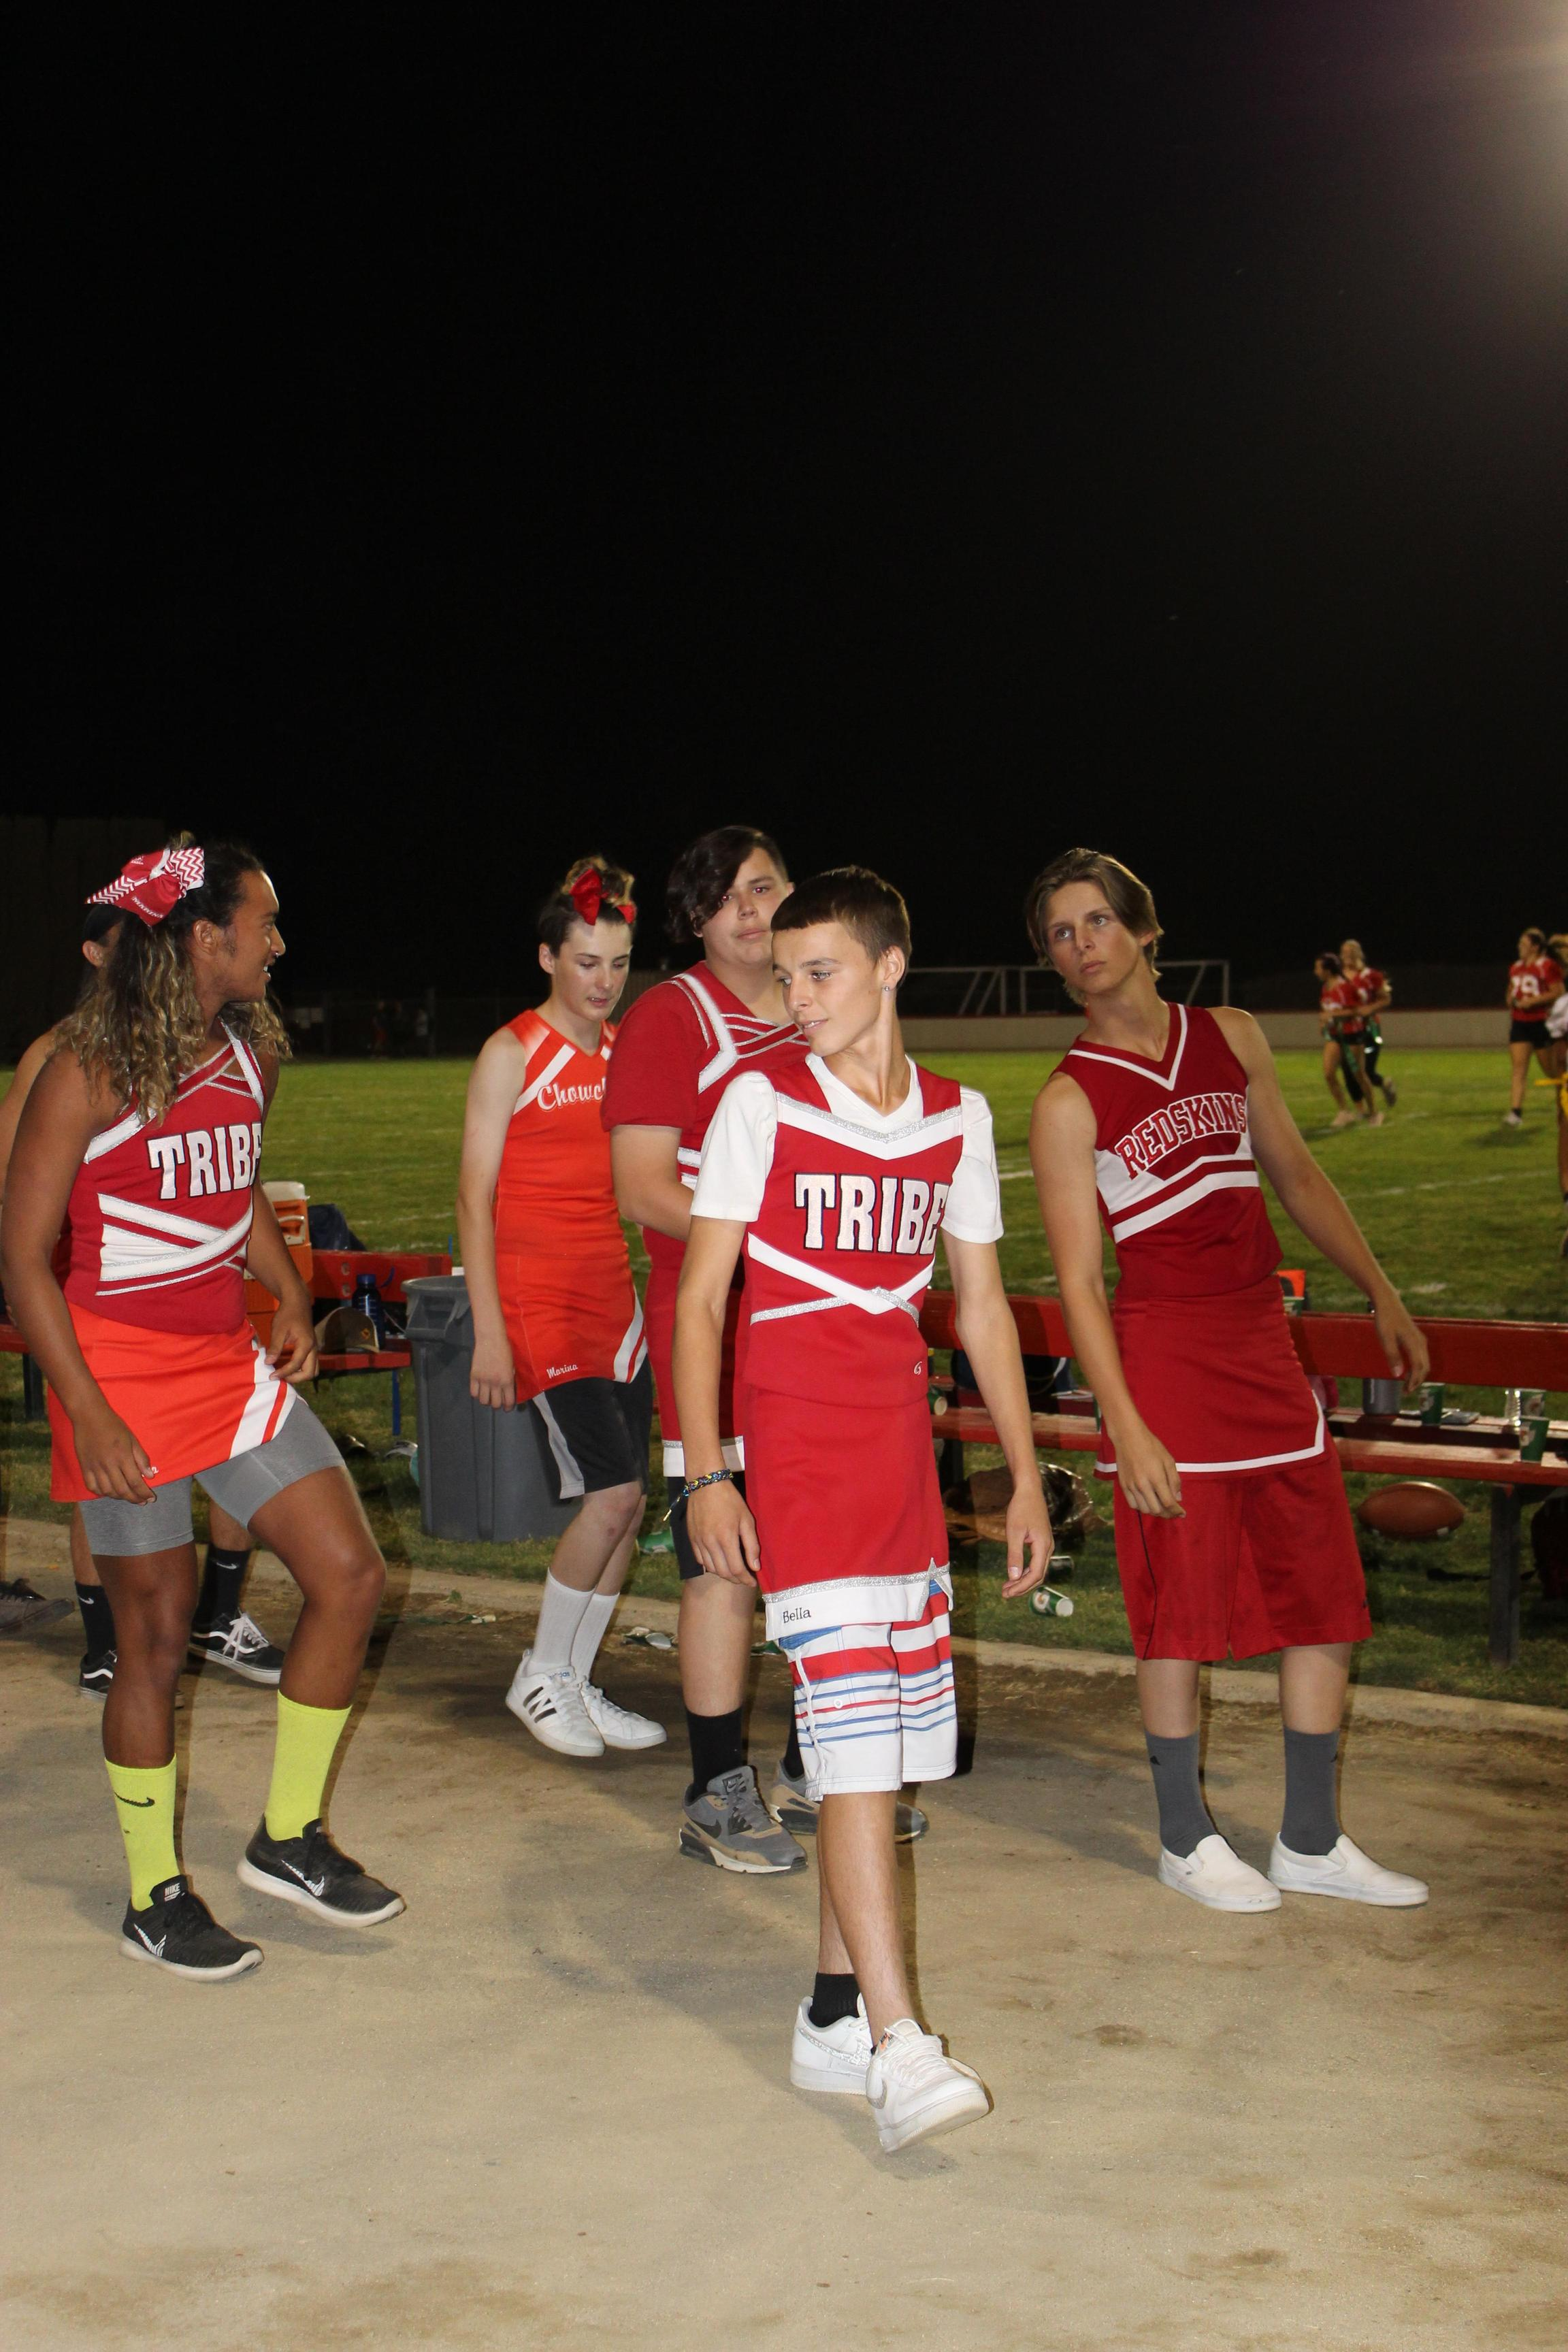 Students having fun at Powderpuff game